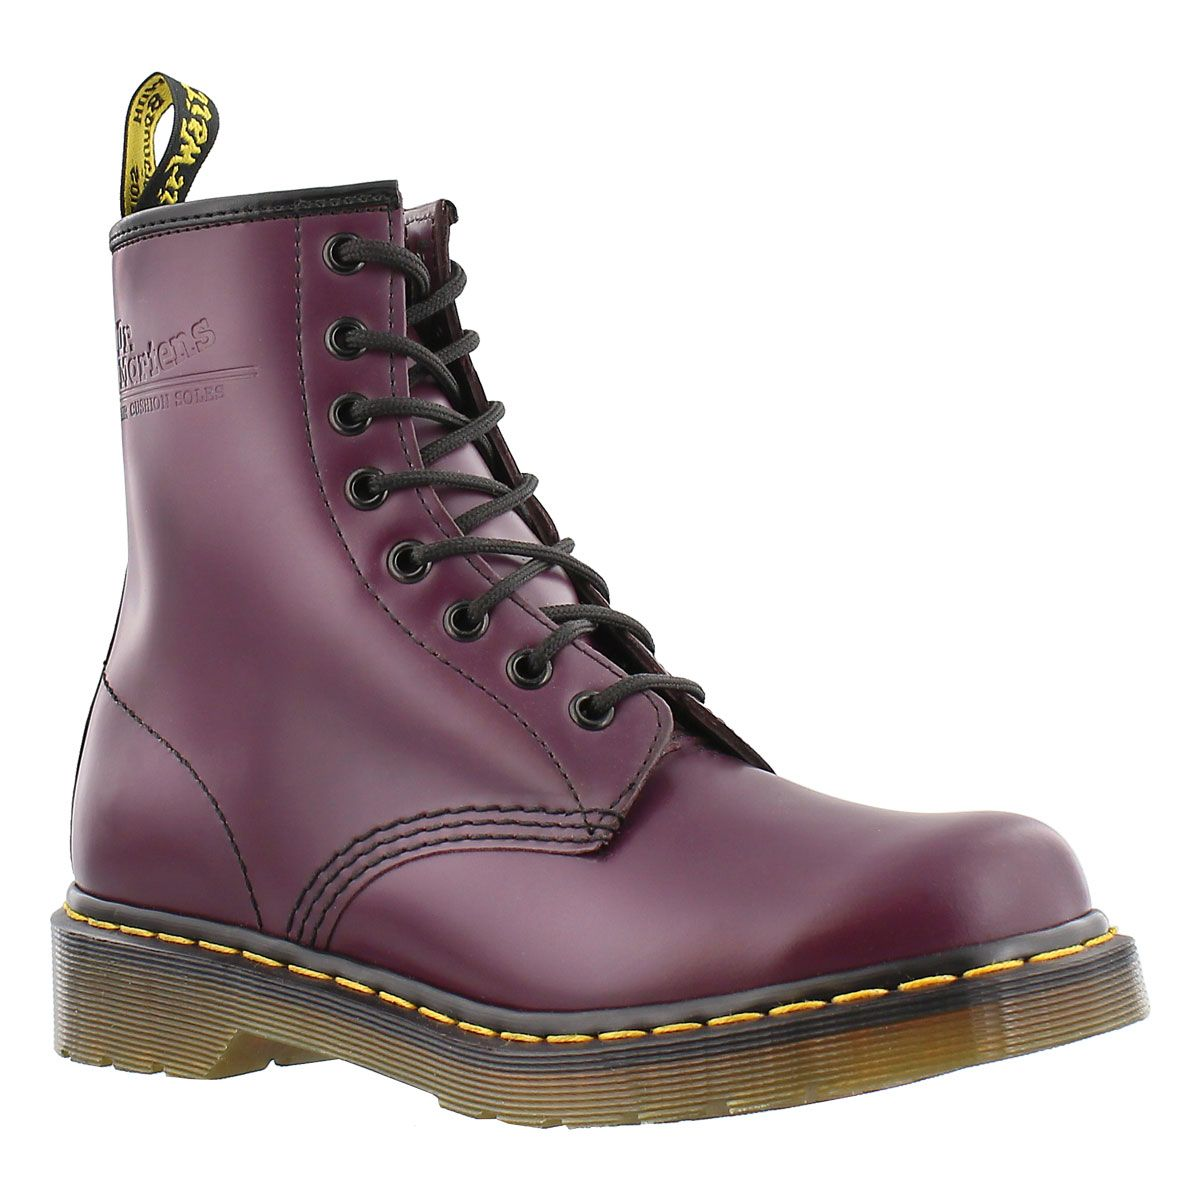 bcd4e20f5bc Women s 1460 8-Eye purple smooth leather boots en 2019